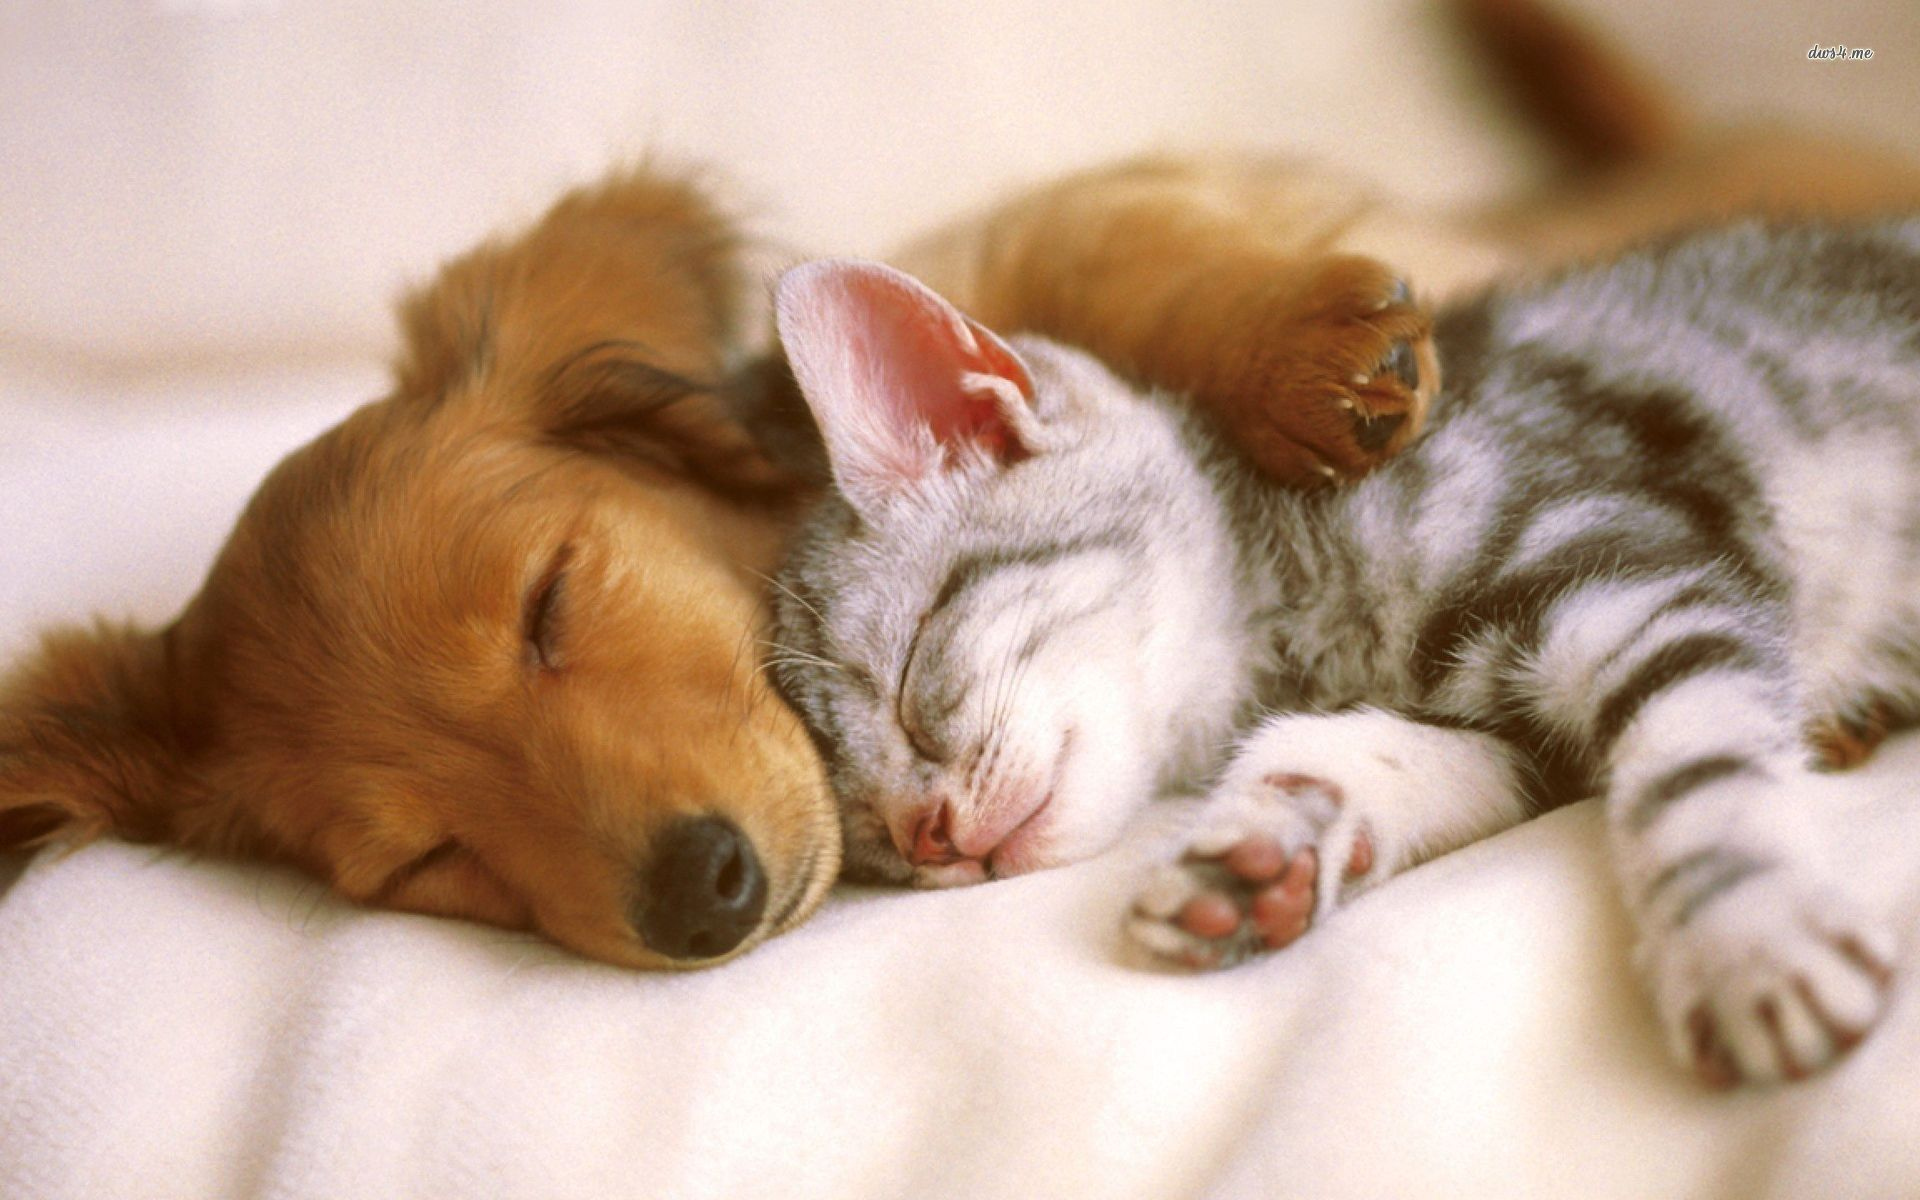 Kitten And Puppy Bonding Cute Puppies And Kittens Kittens Cutest Kittens And Puppies